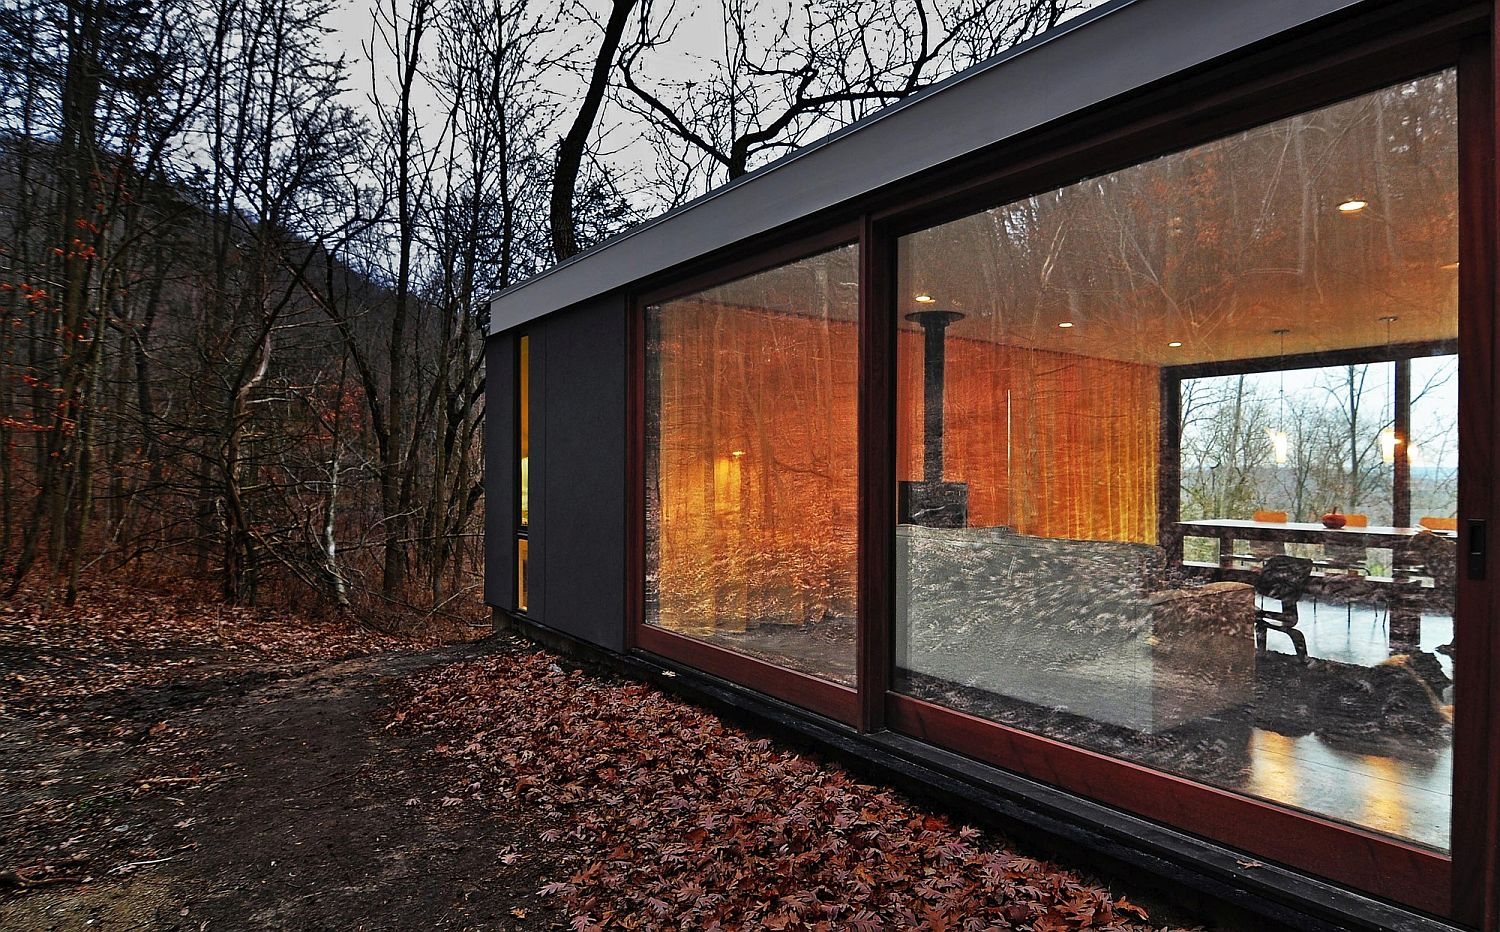 Sliding glass doors connect the interior with the landscape outside